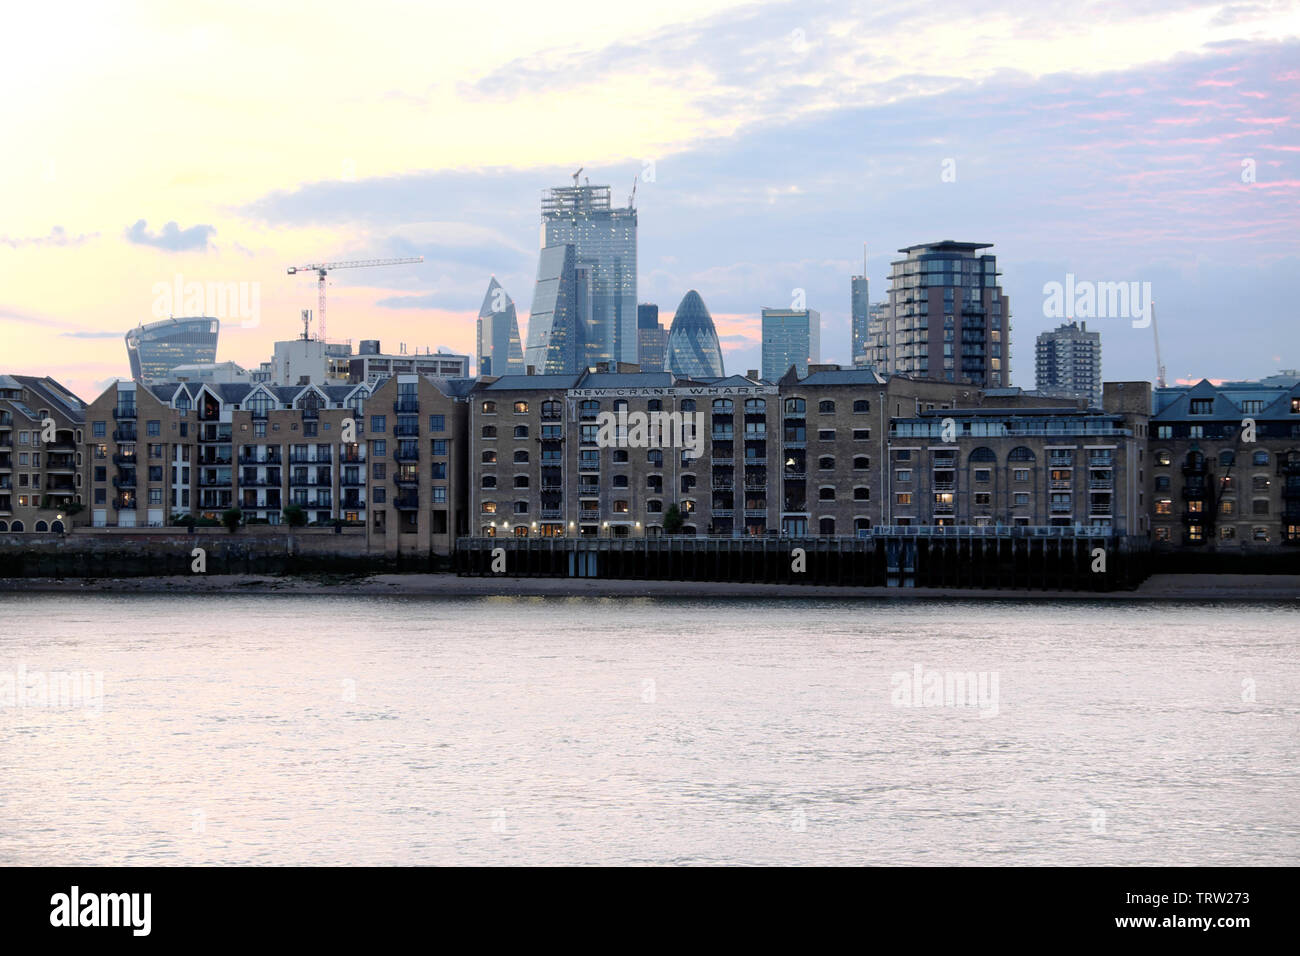 Thames homes apartments London living Wapping flats on river view from Rotherhithe and City of London skyscrapers England UK  KATHY DEWITT - Stock Image